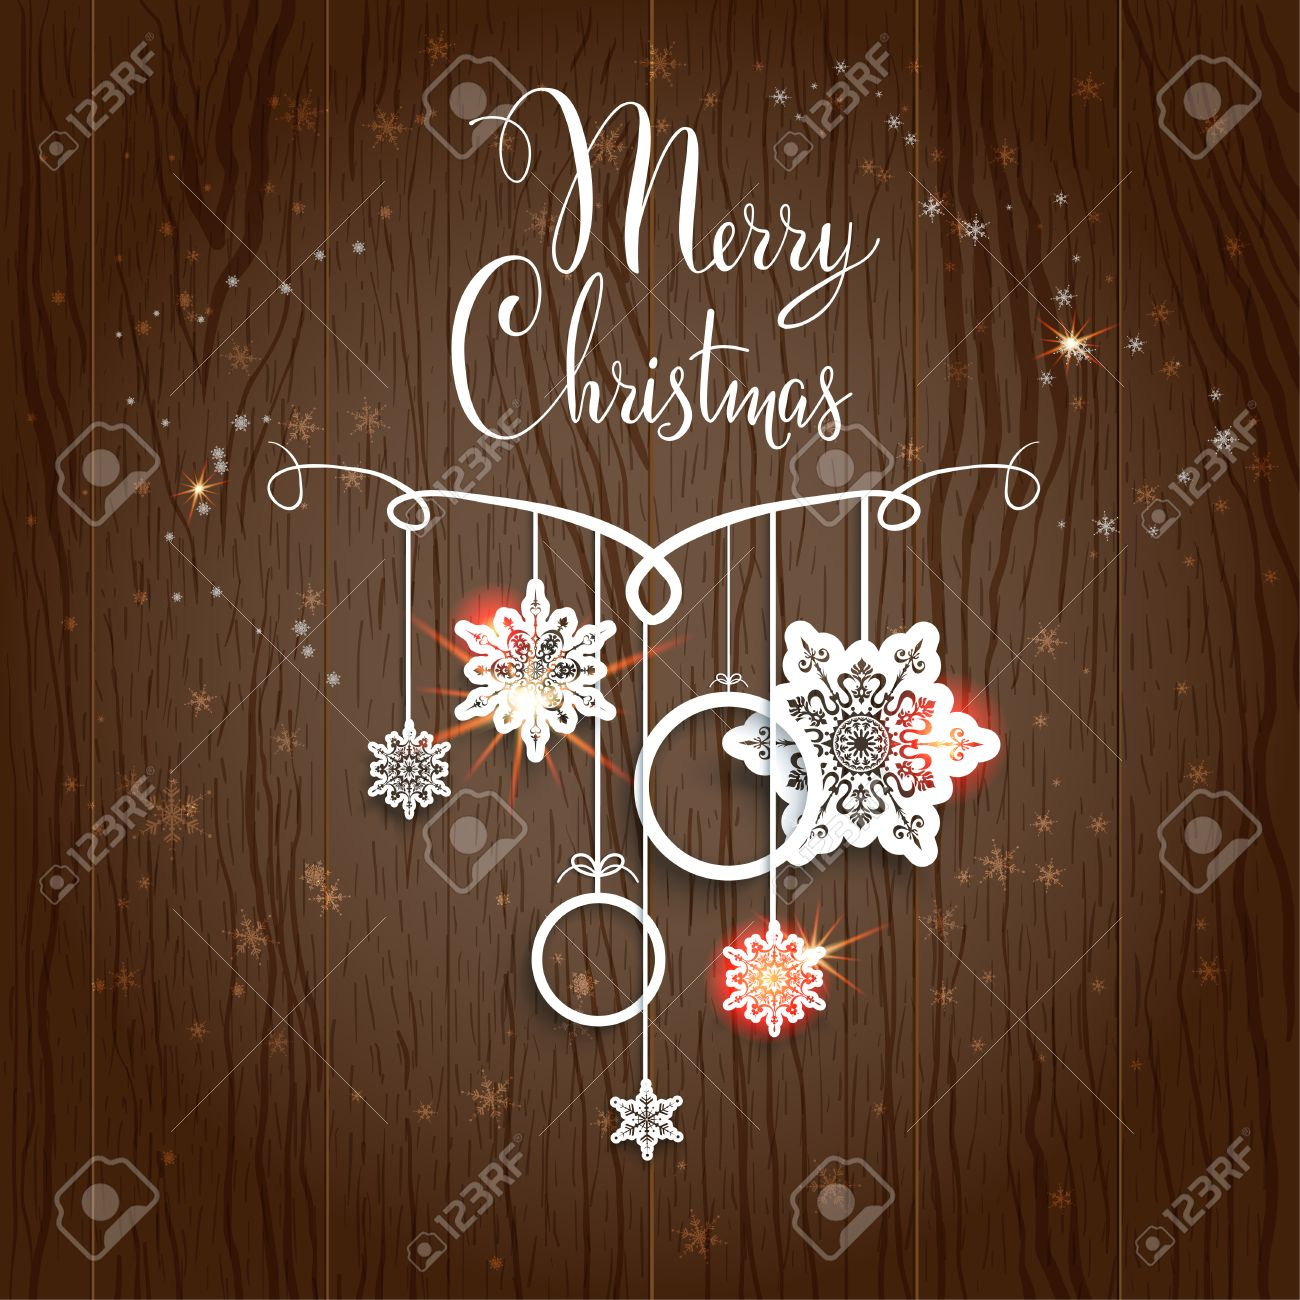 Merry Christmas design on wood background - 33461019